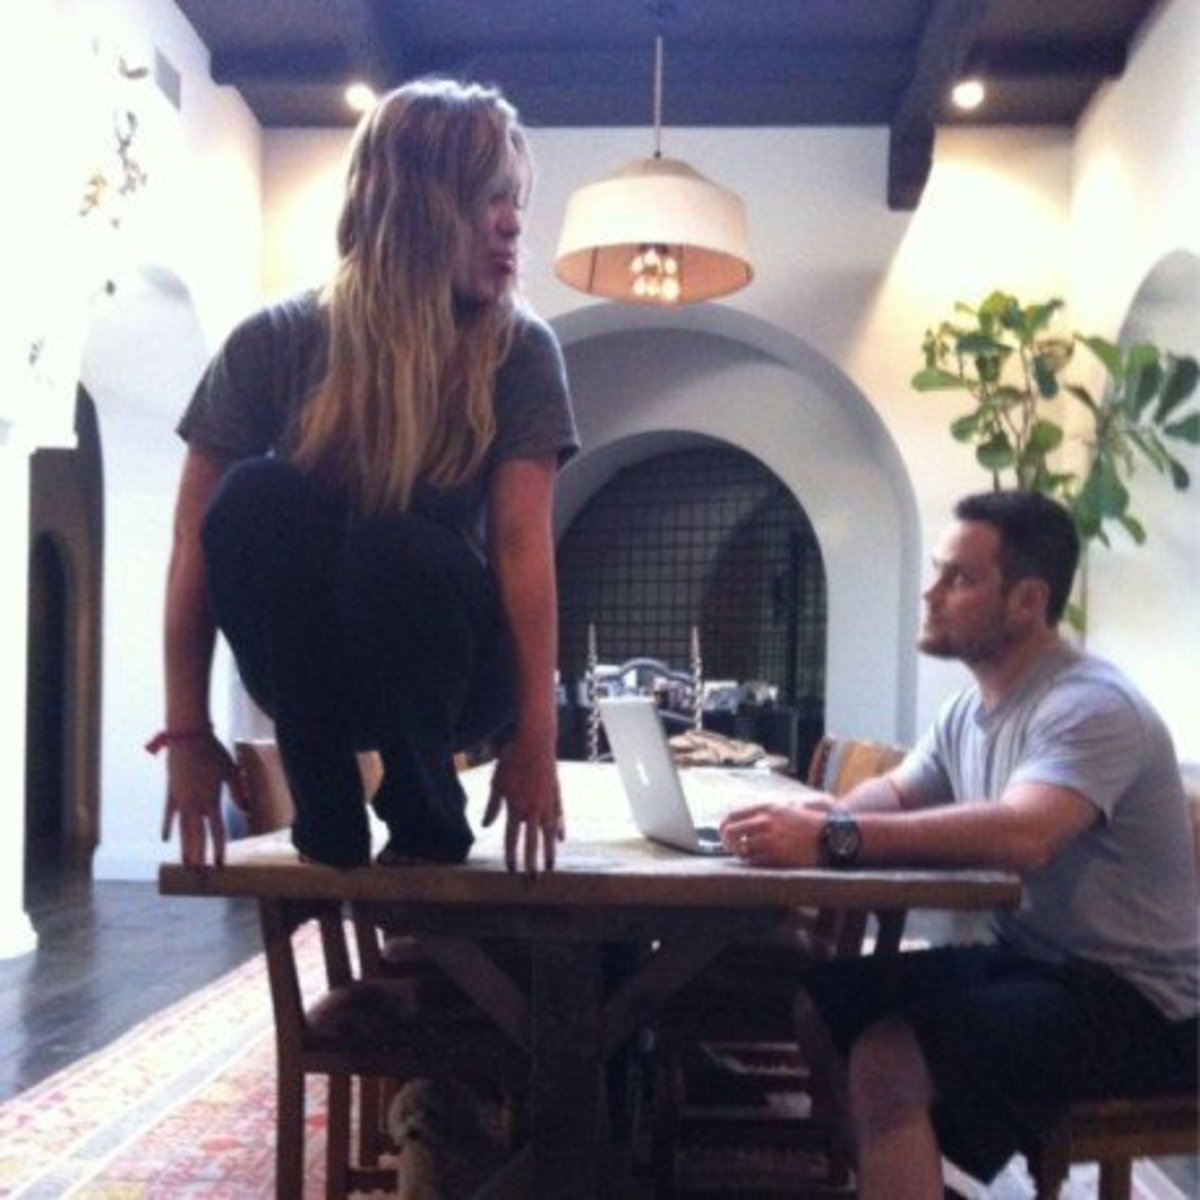 Hilary Duff tweeted this picture of herself Owling. Her husband Mike Comrie looks at her from the corner of his eye.